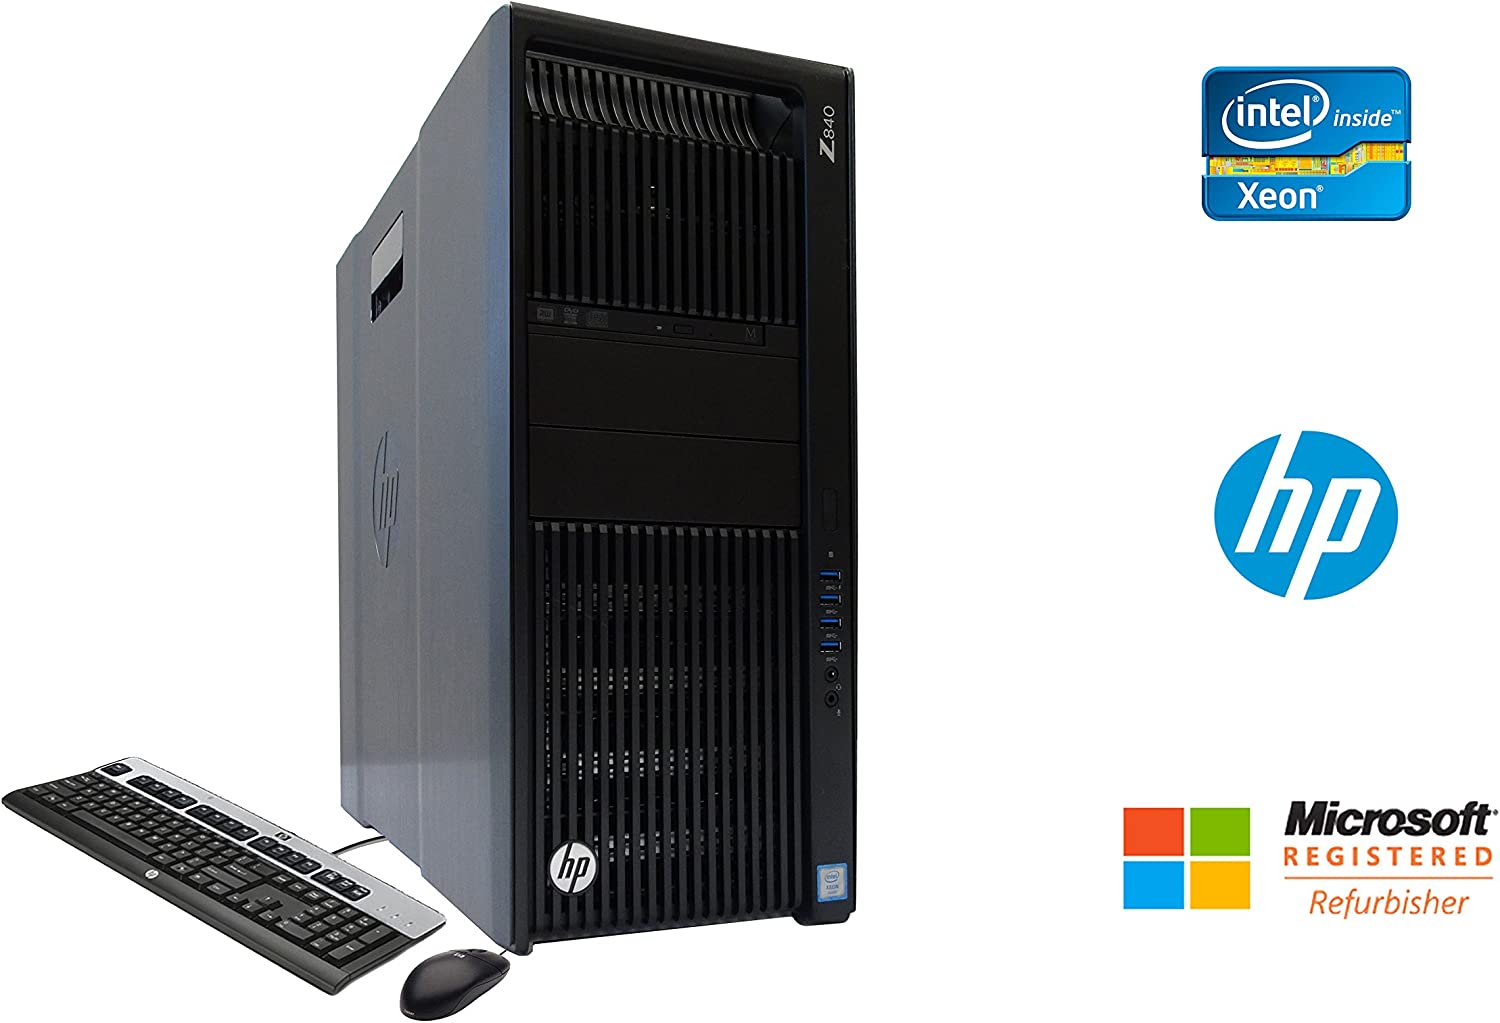 HP Z840 Professional Workstation Intel Xeon 12 Core 64GB DDR4 RAM 500GB SSD + 4TB HD NVIDIA Quadro K5000 4GB Graphics CD/DVDRW Windows 10 Pro 64-bit